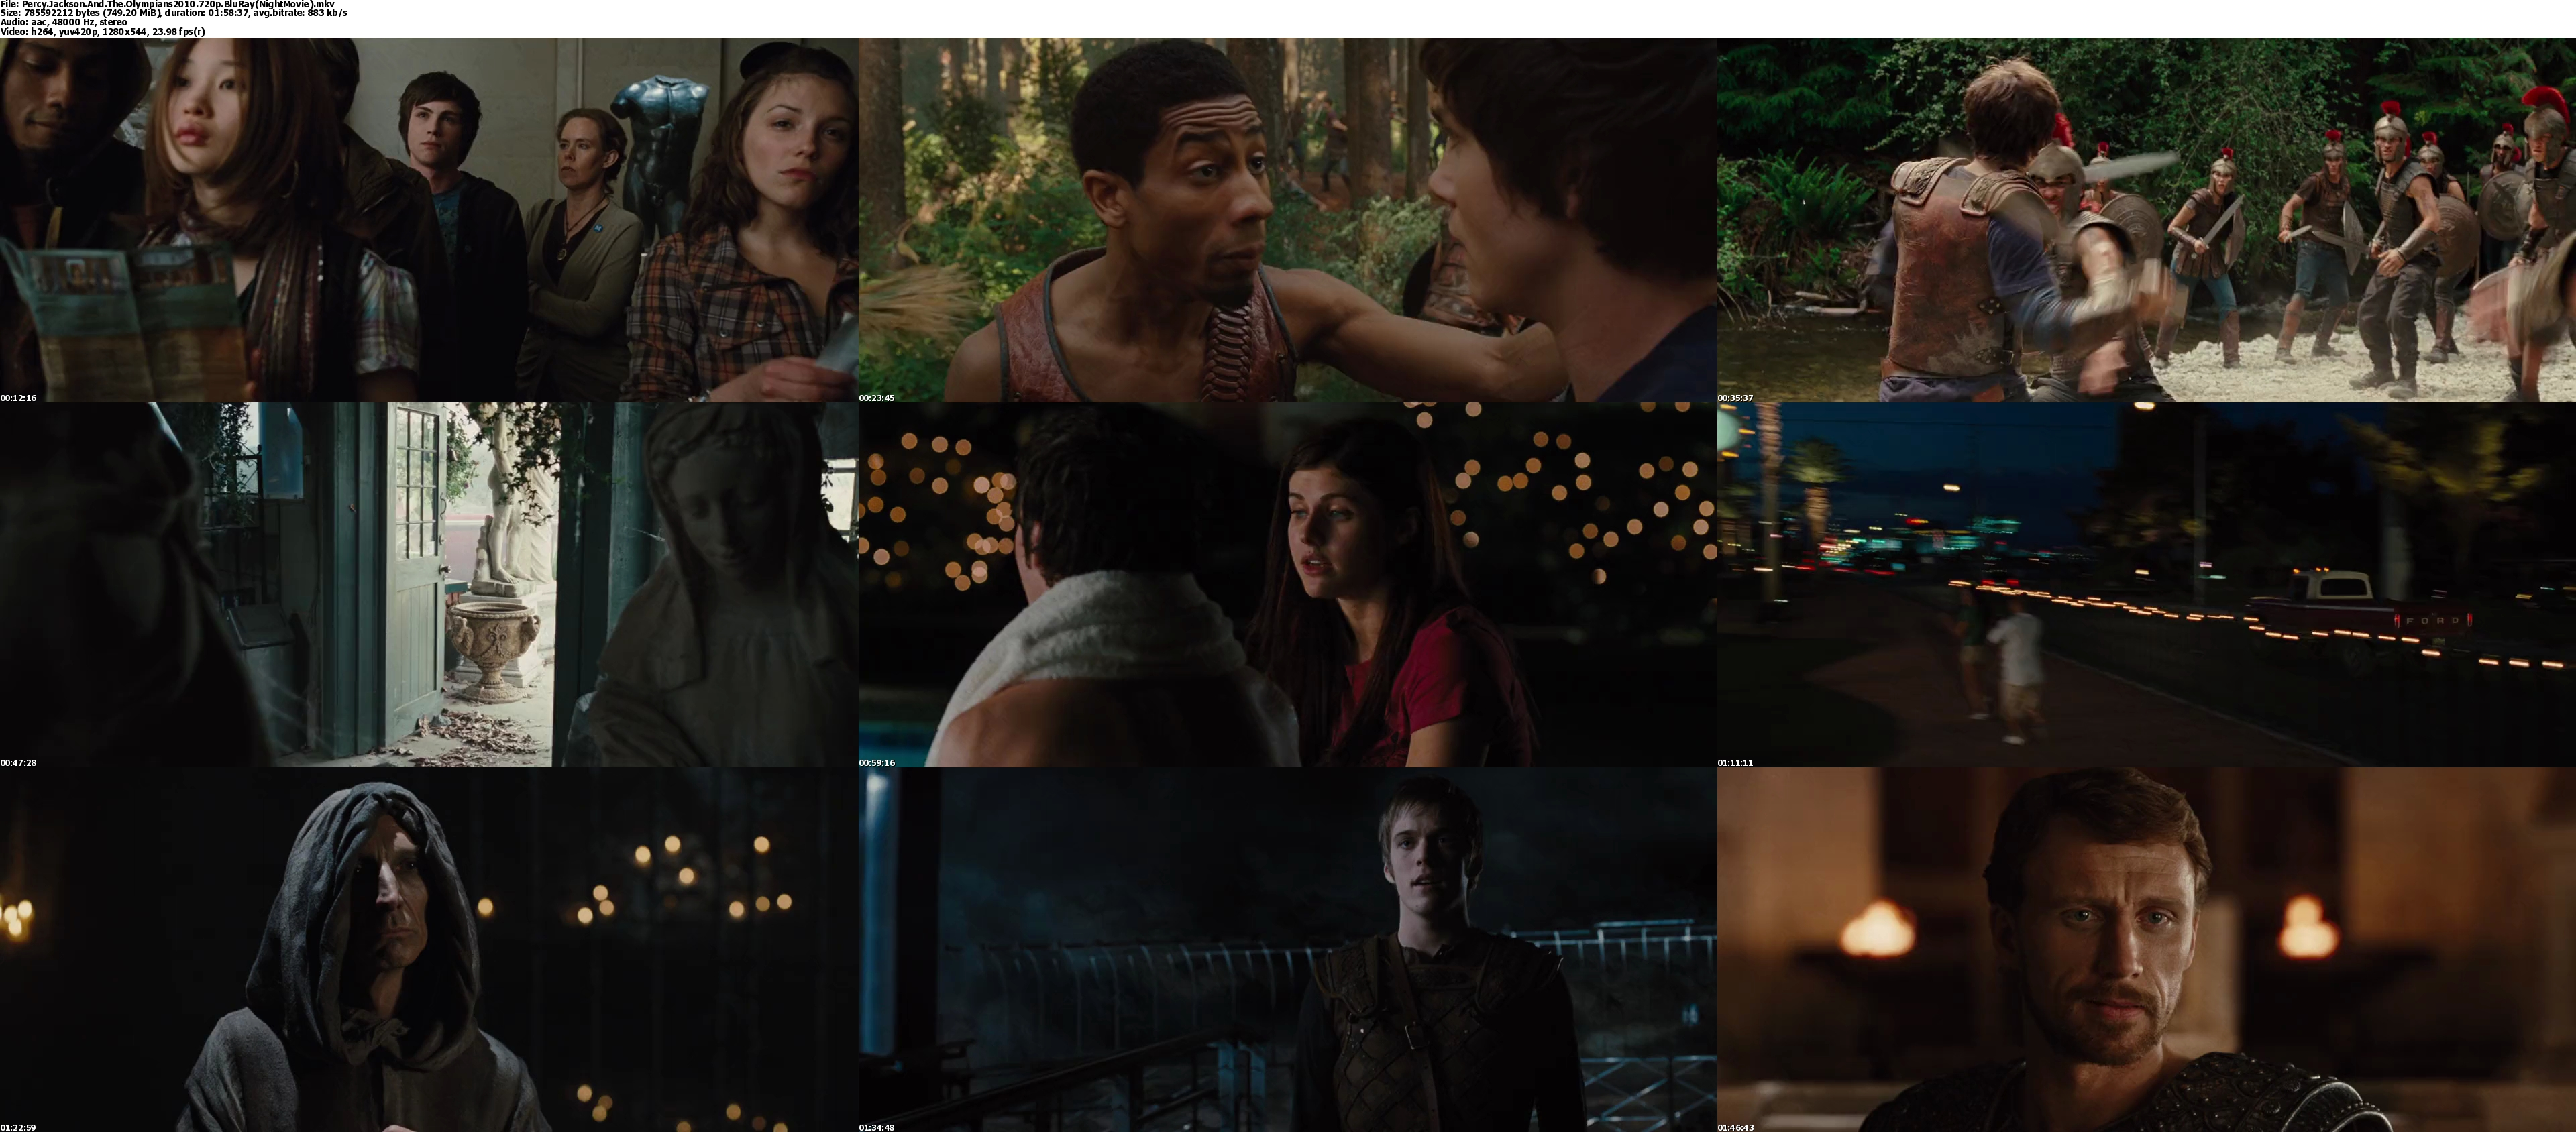 percy jackson and the olympians essay Tyson is a fictional character in rick riordan's percy jackson and the olympians series he is a cyclops percy jackson, the main character of the series, is his half.